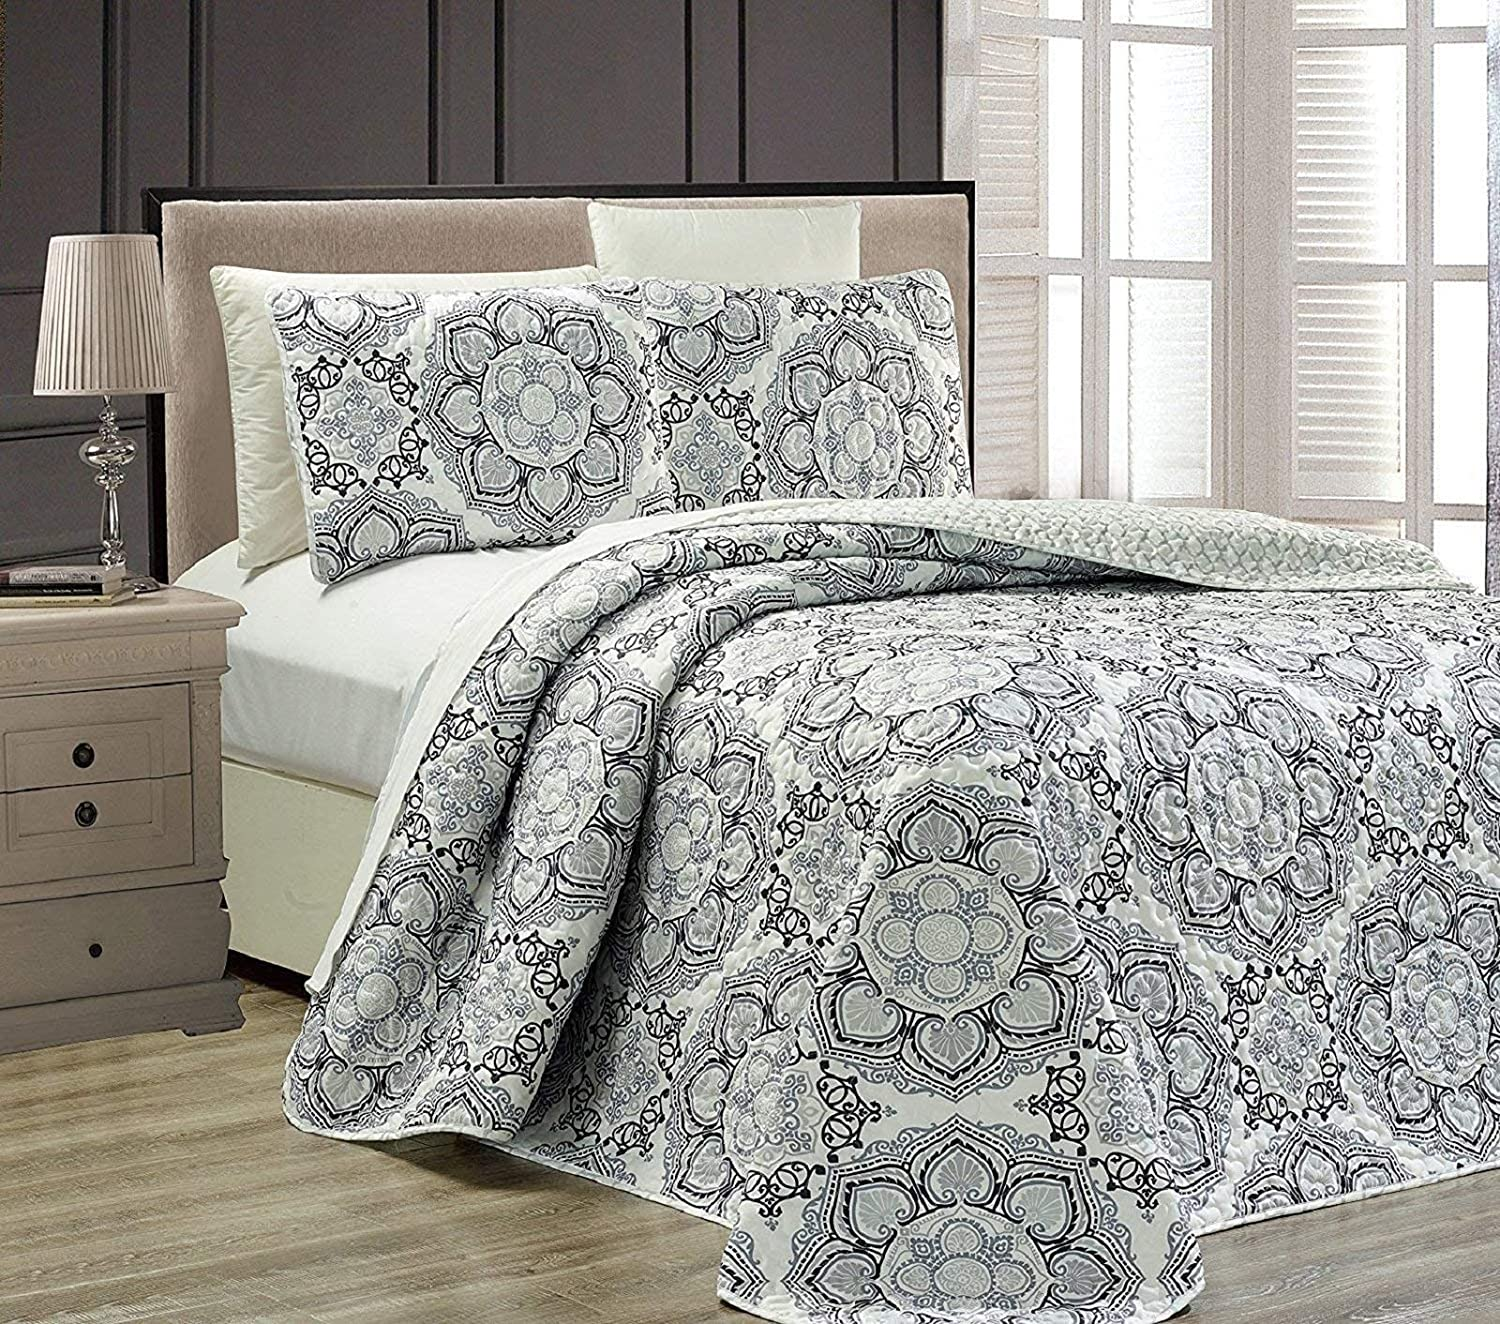 Mk Collection 3pc Queen Oversize Reversible Quilted Bedspread Set Floral Gray White Black New